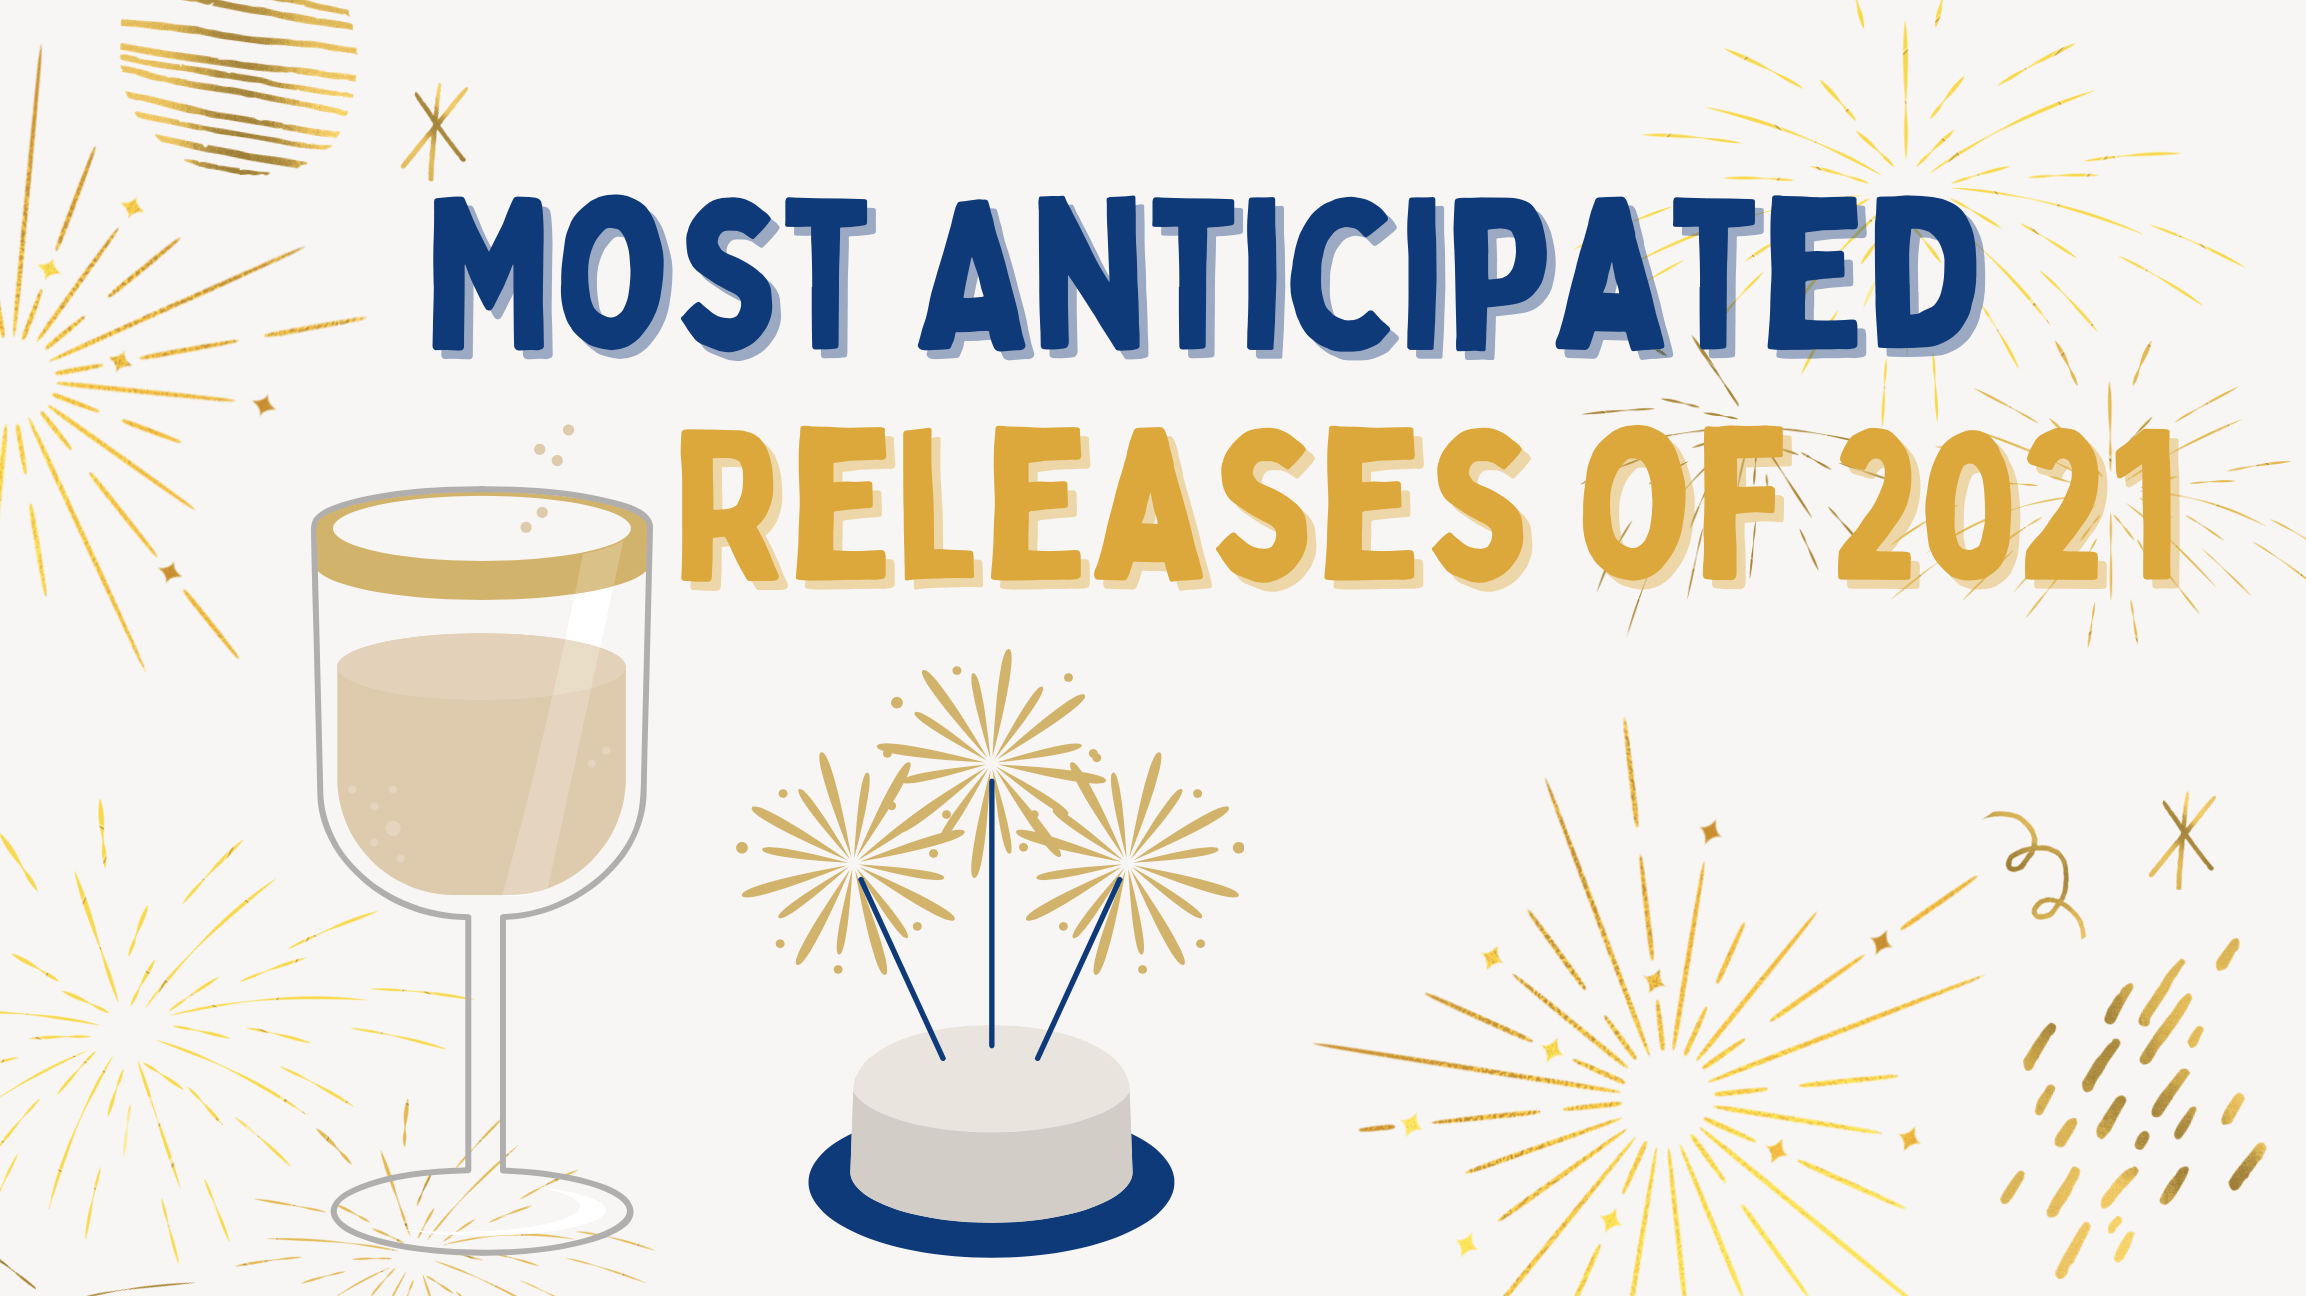 Most Anticipated Releases for 2021